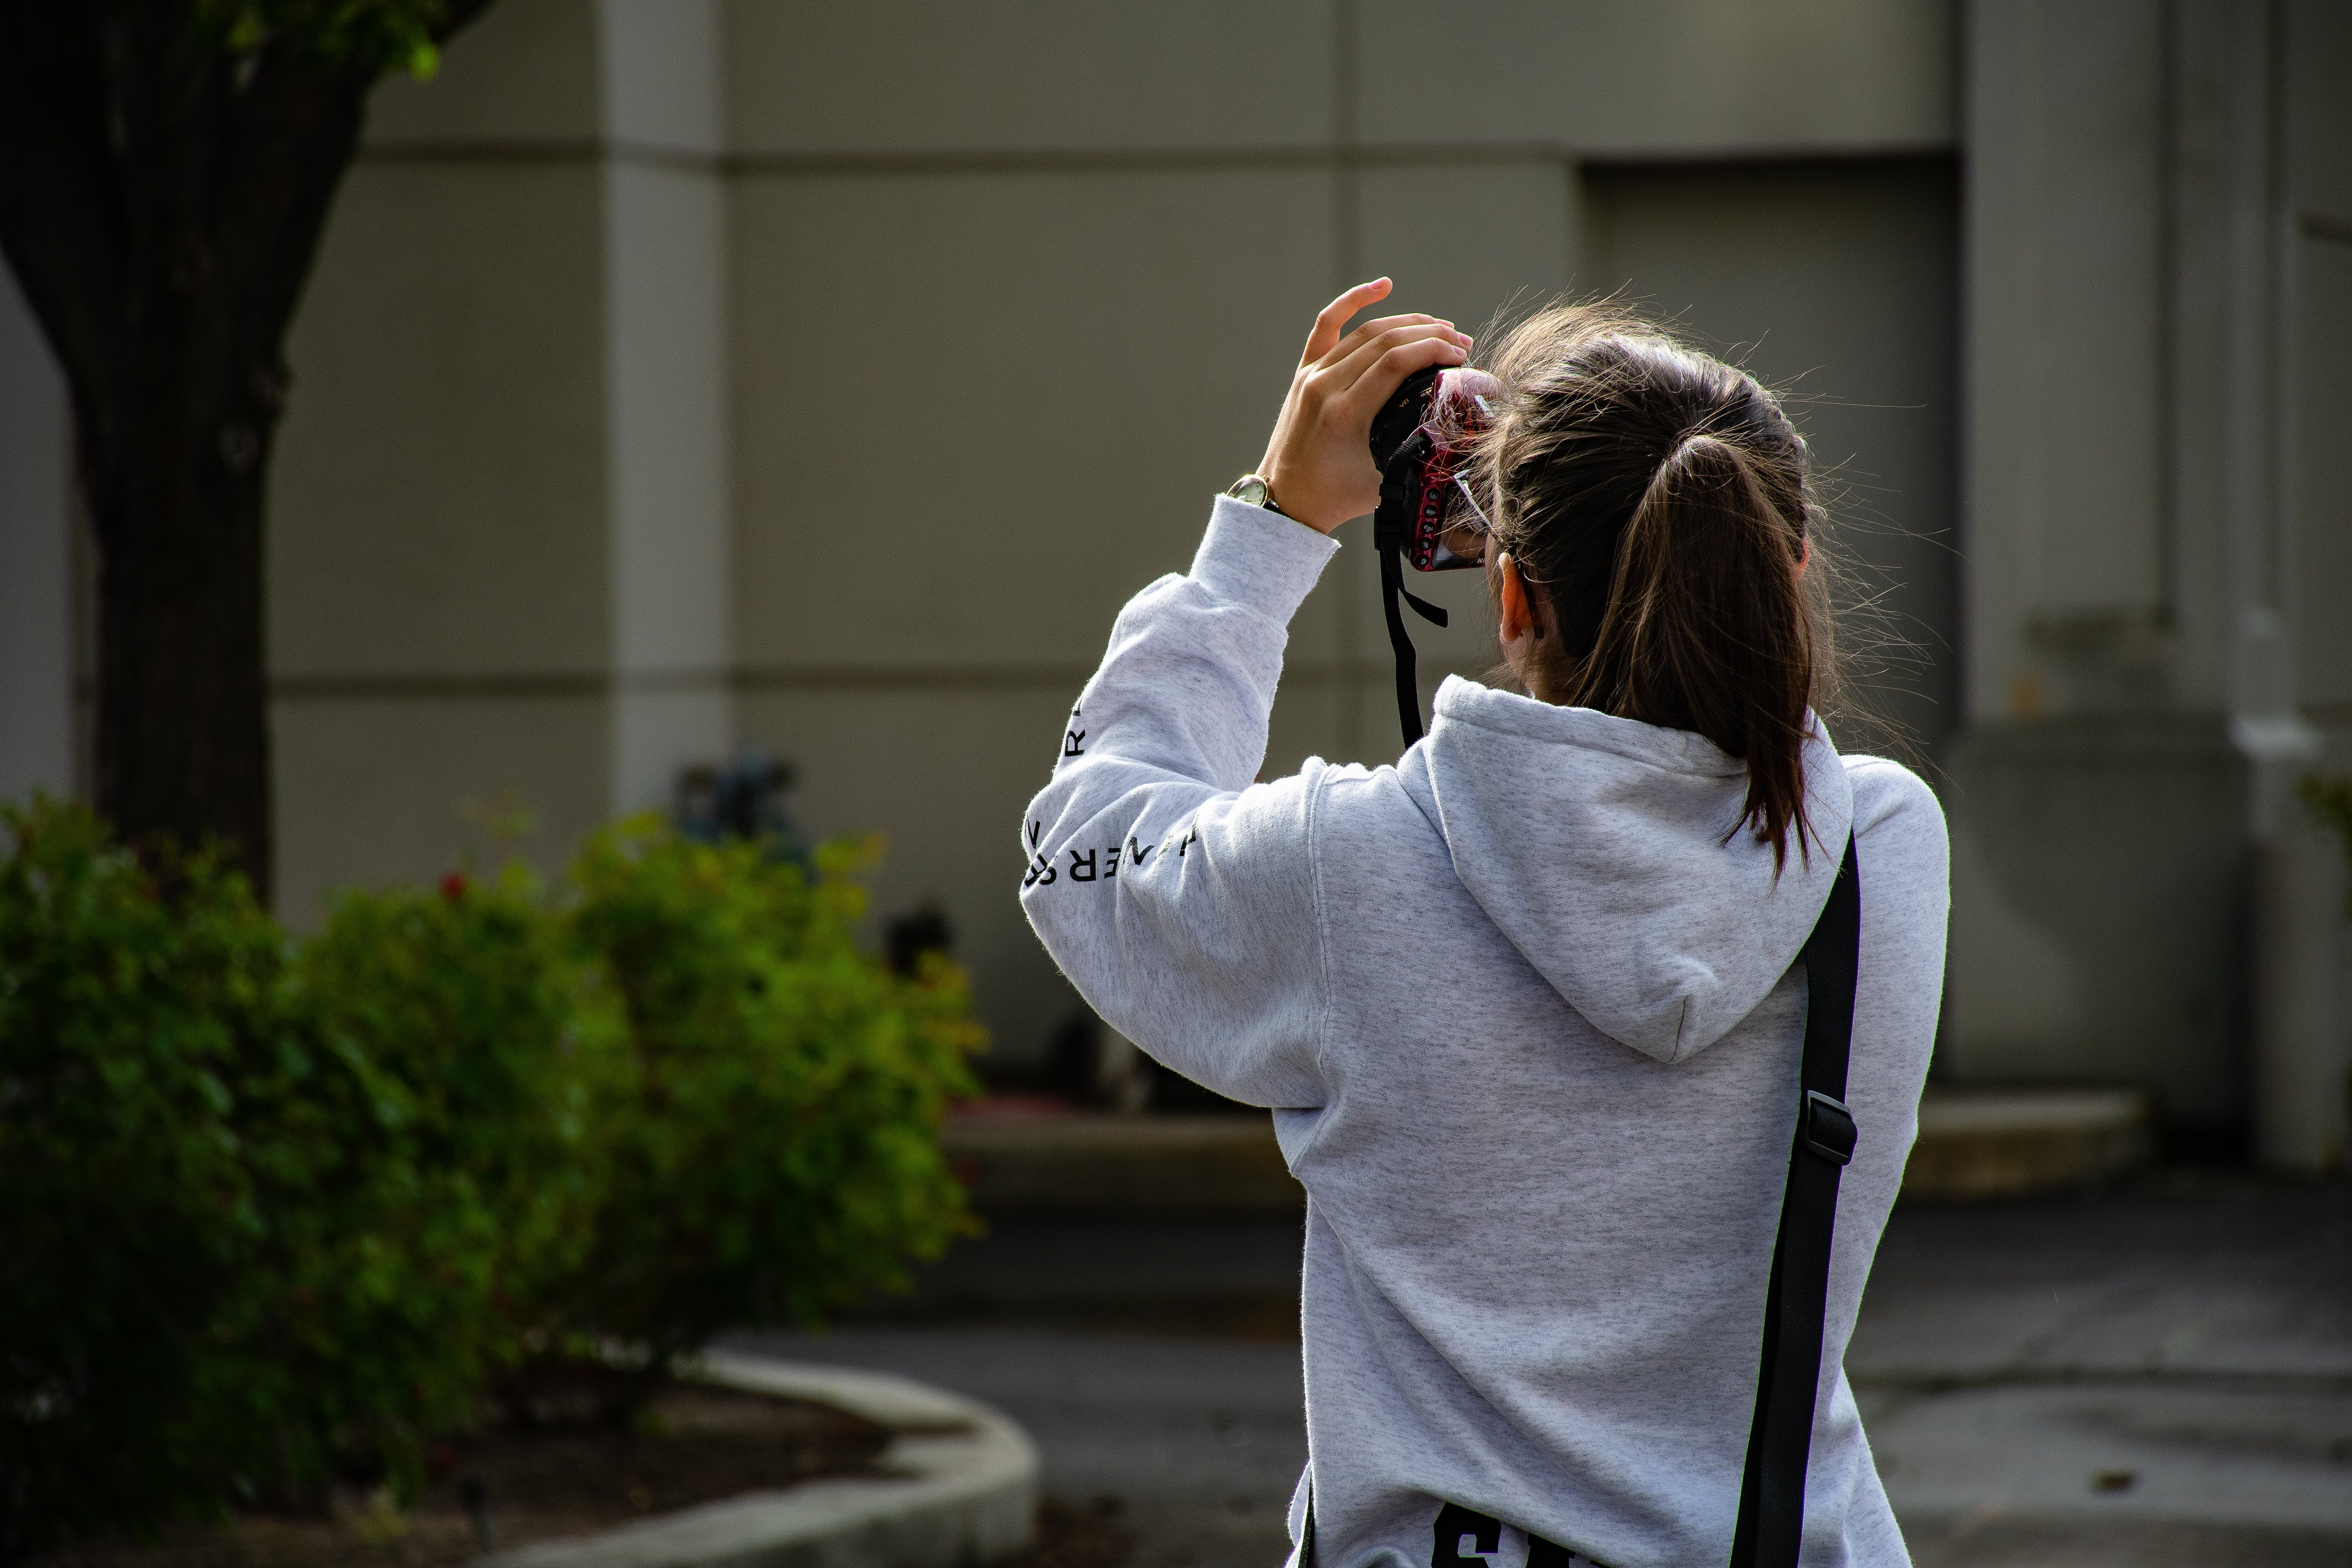 Photo of Girl Holding Dslr Camer and Taking Photo